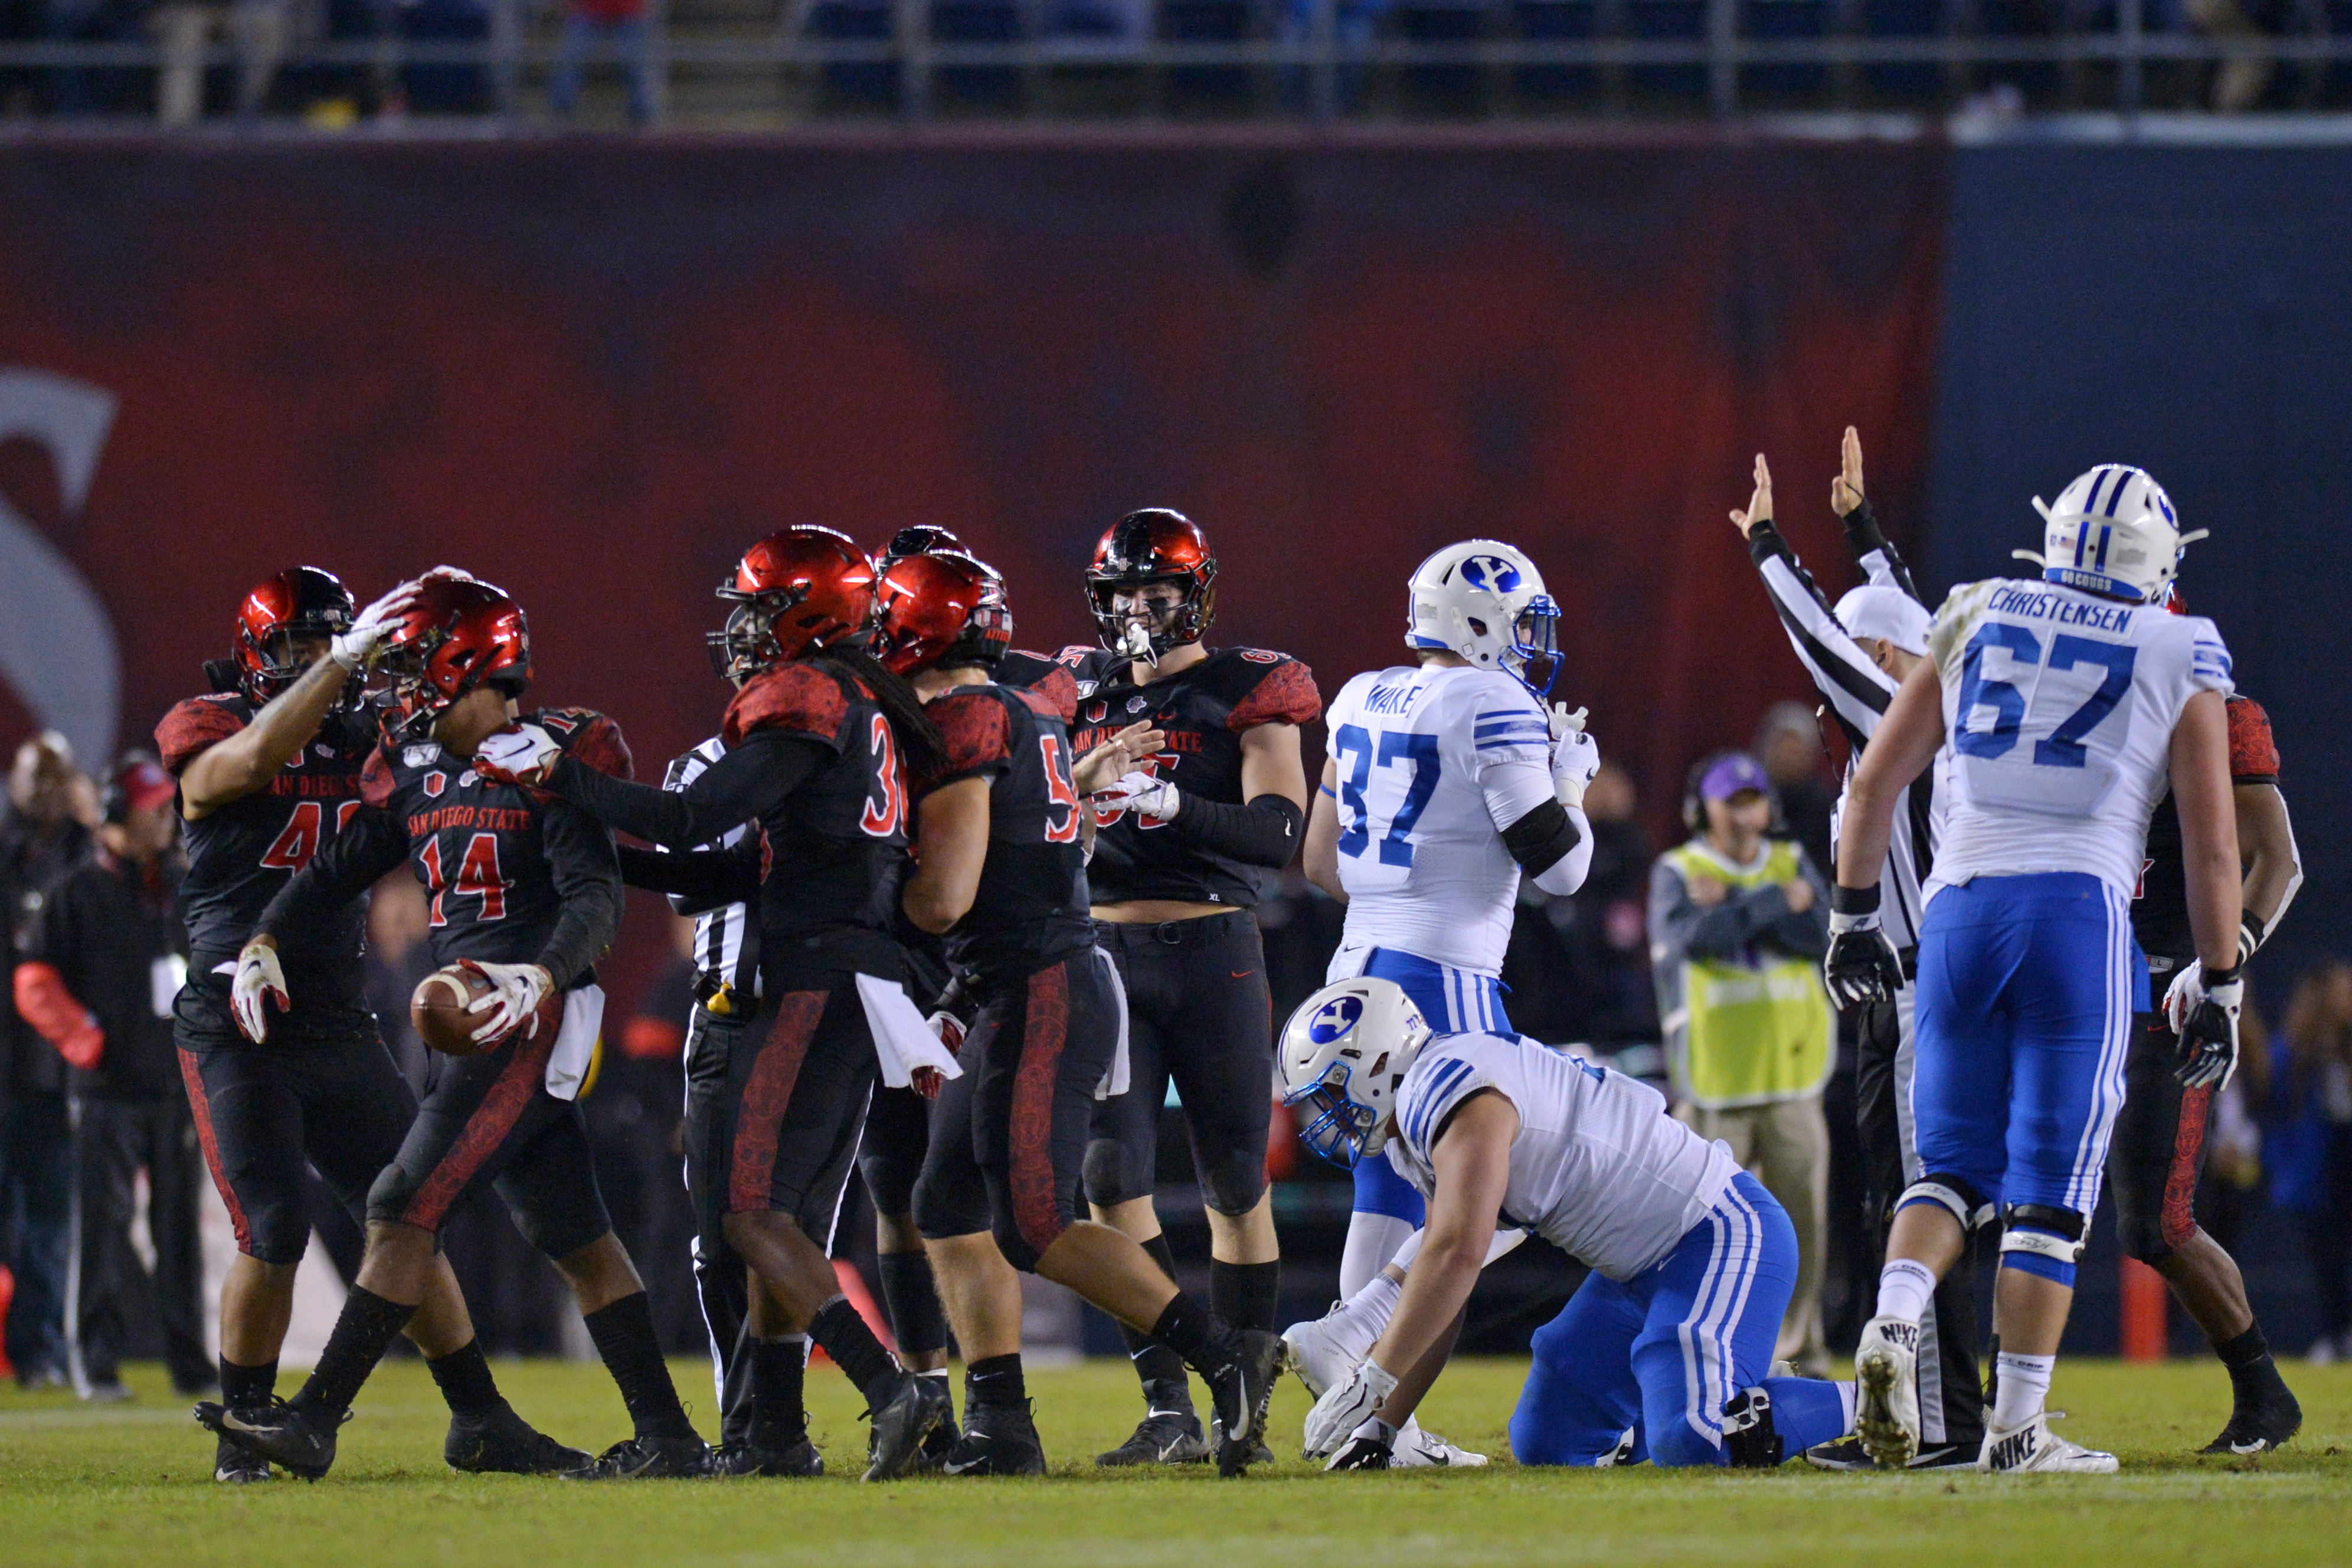 SDSU safety Tariq Thompson is congratulated after recovering a fumble against BYU.